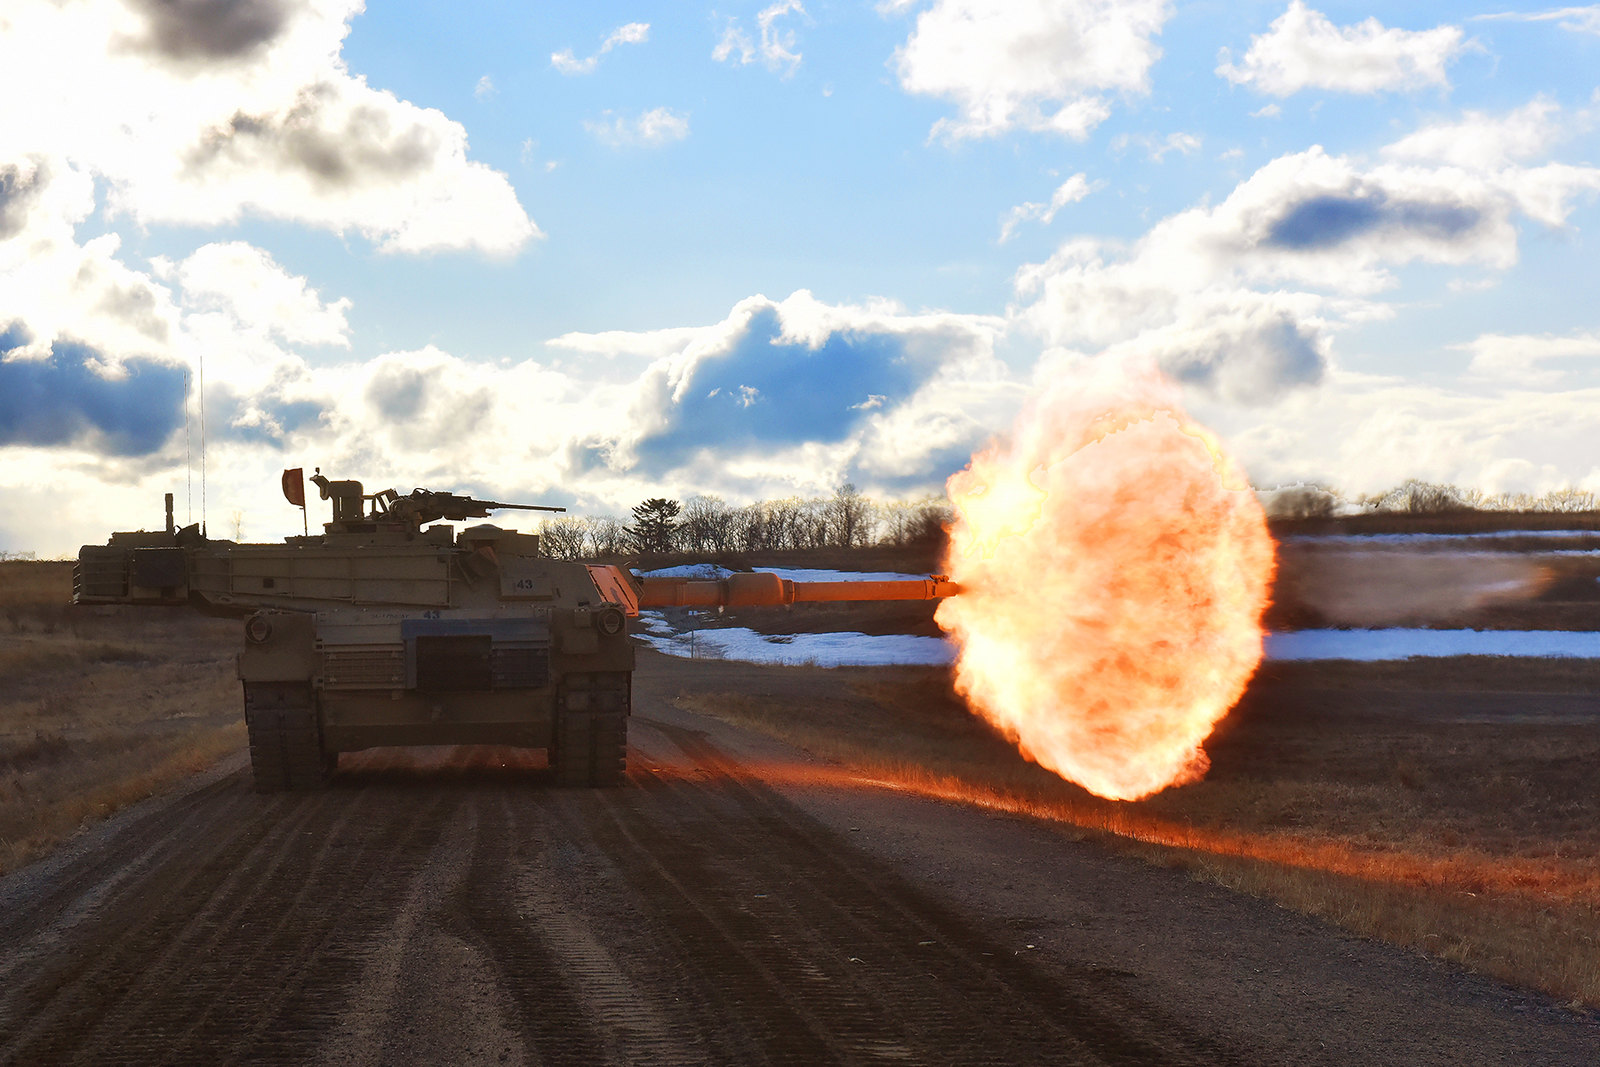 Army tank crews engage targets downrange April 3, 2019, during gunnery training at Camp Ripley, Minn. (Army)